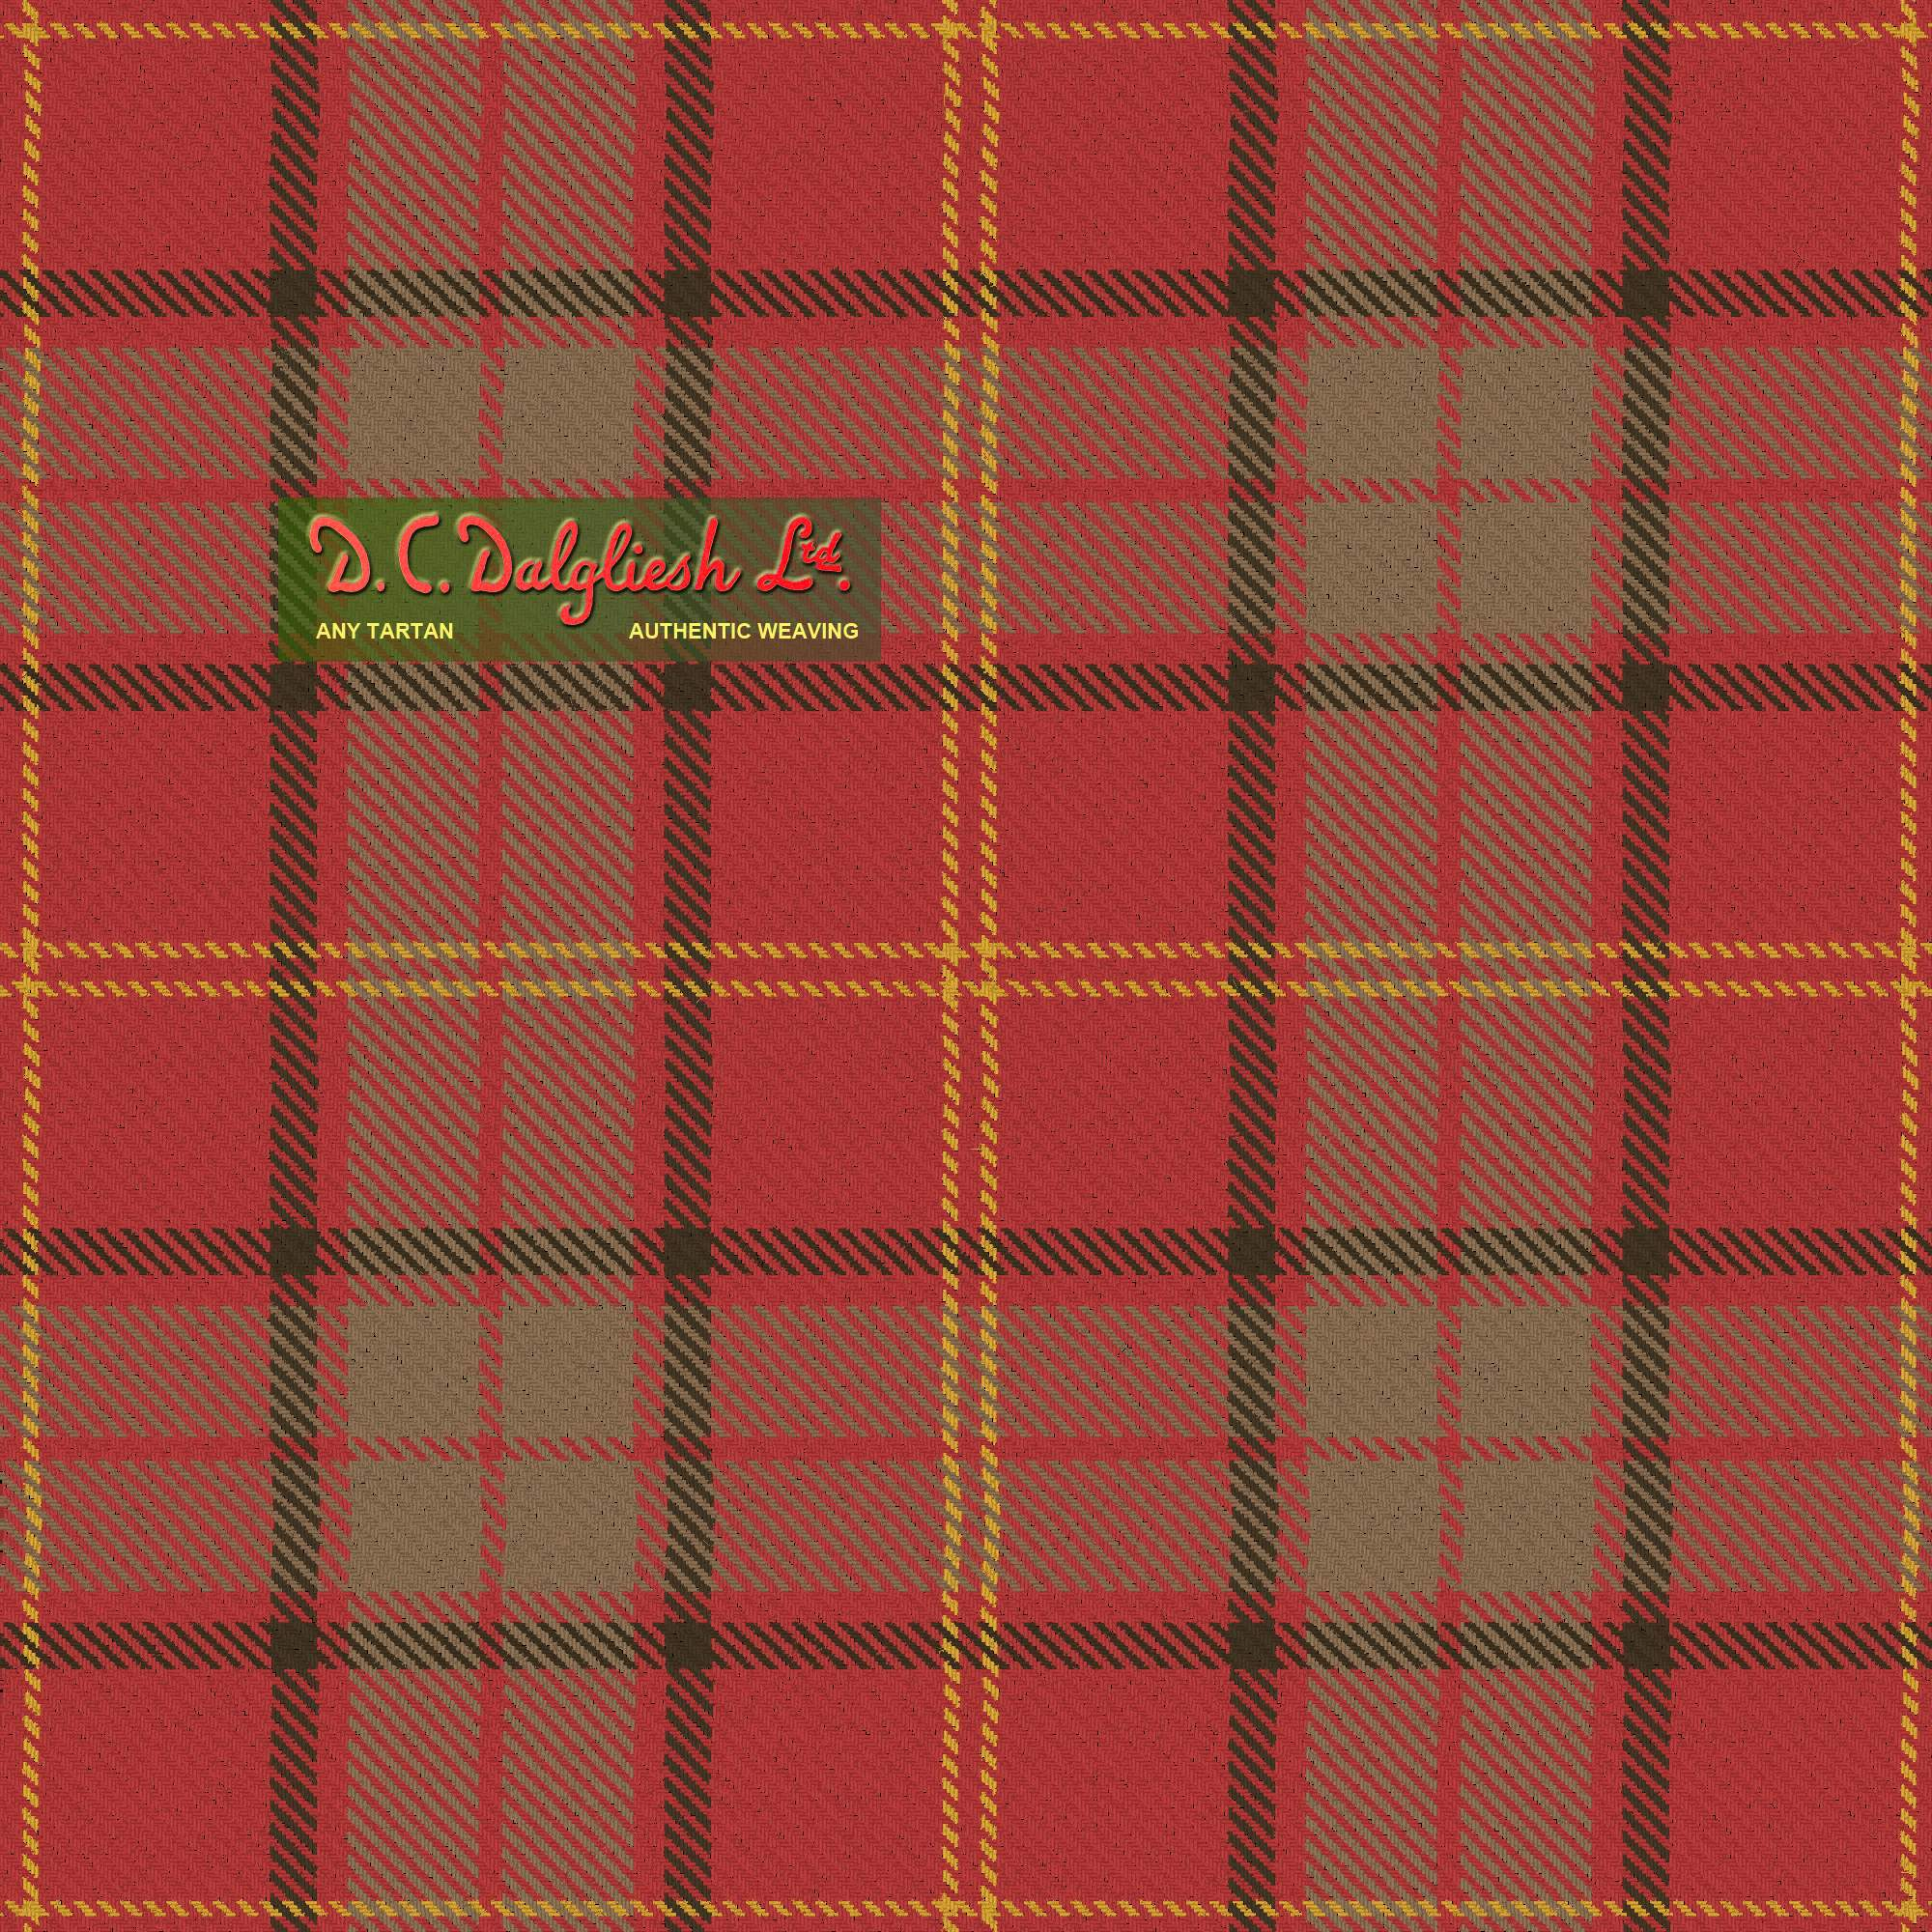 Kirk Fabric By Dc Dalgliesh Hand Crafted Tartans